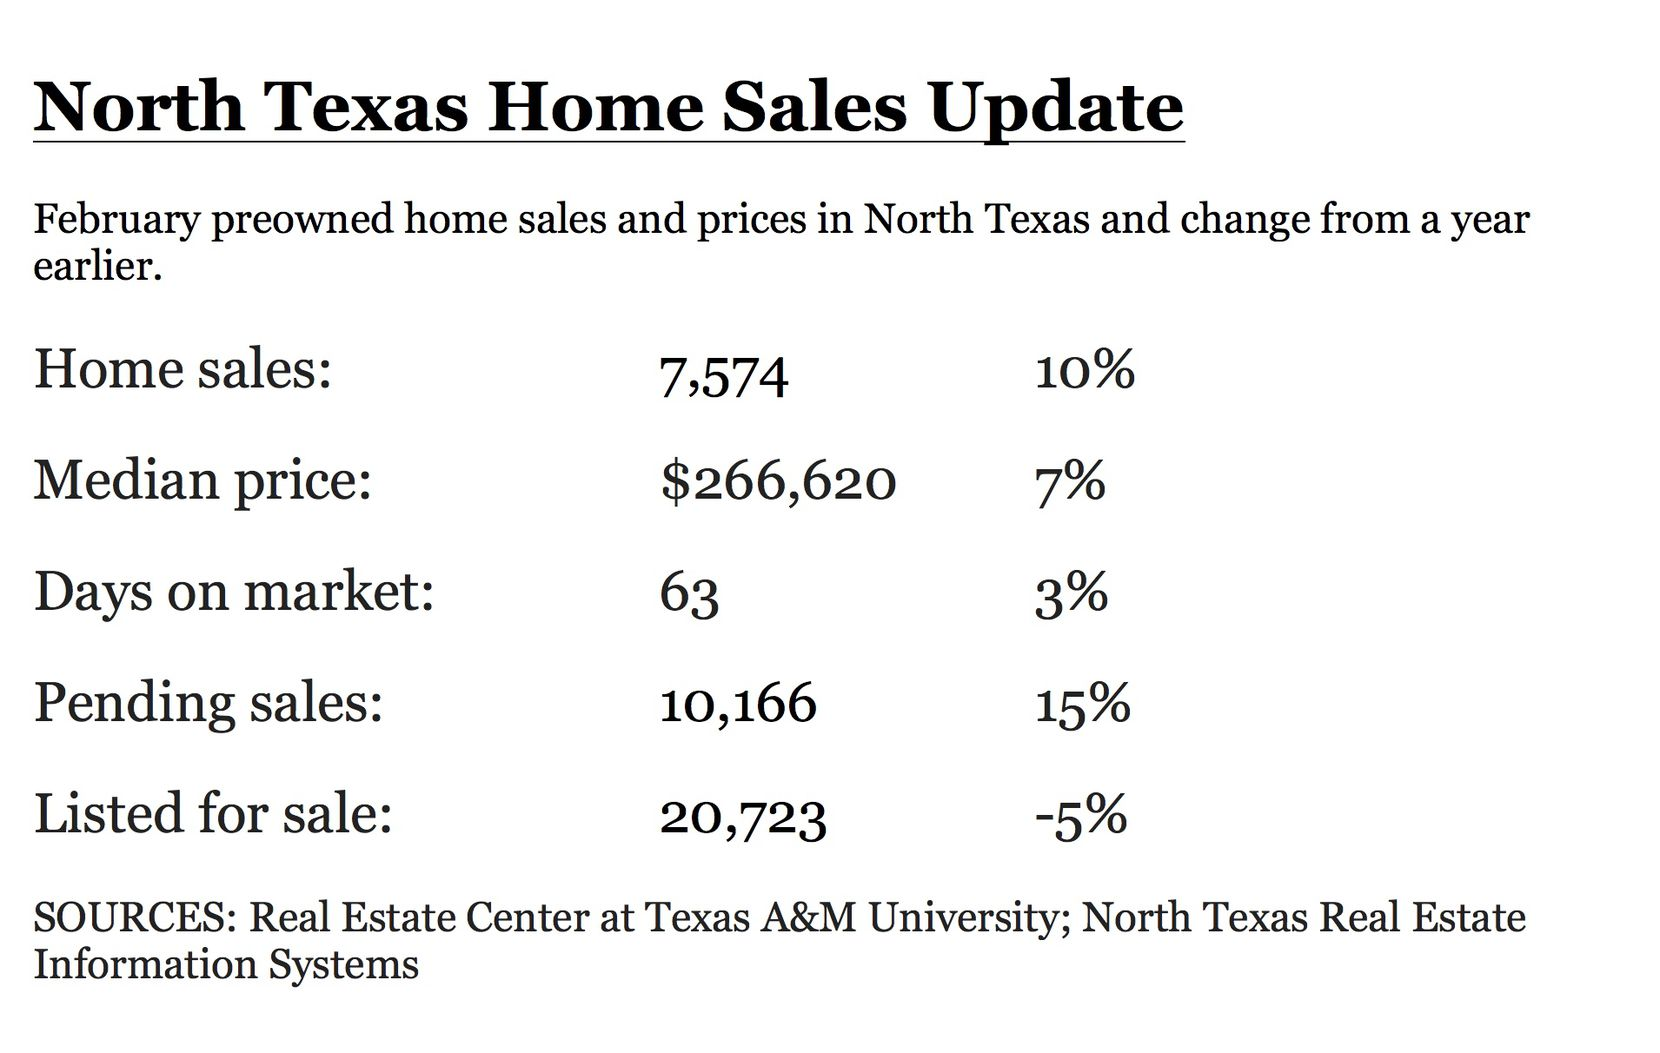 Home inventories fell with the strong sales.